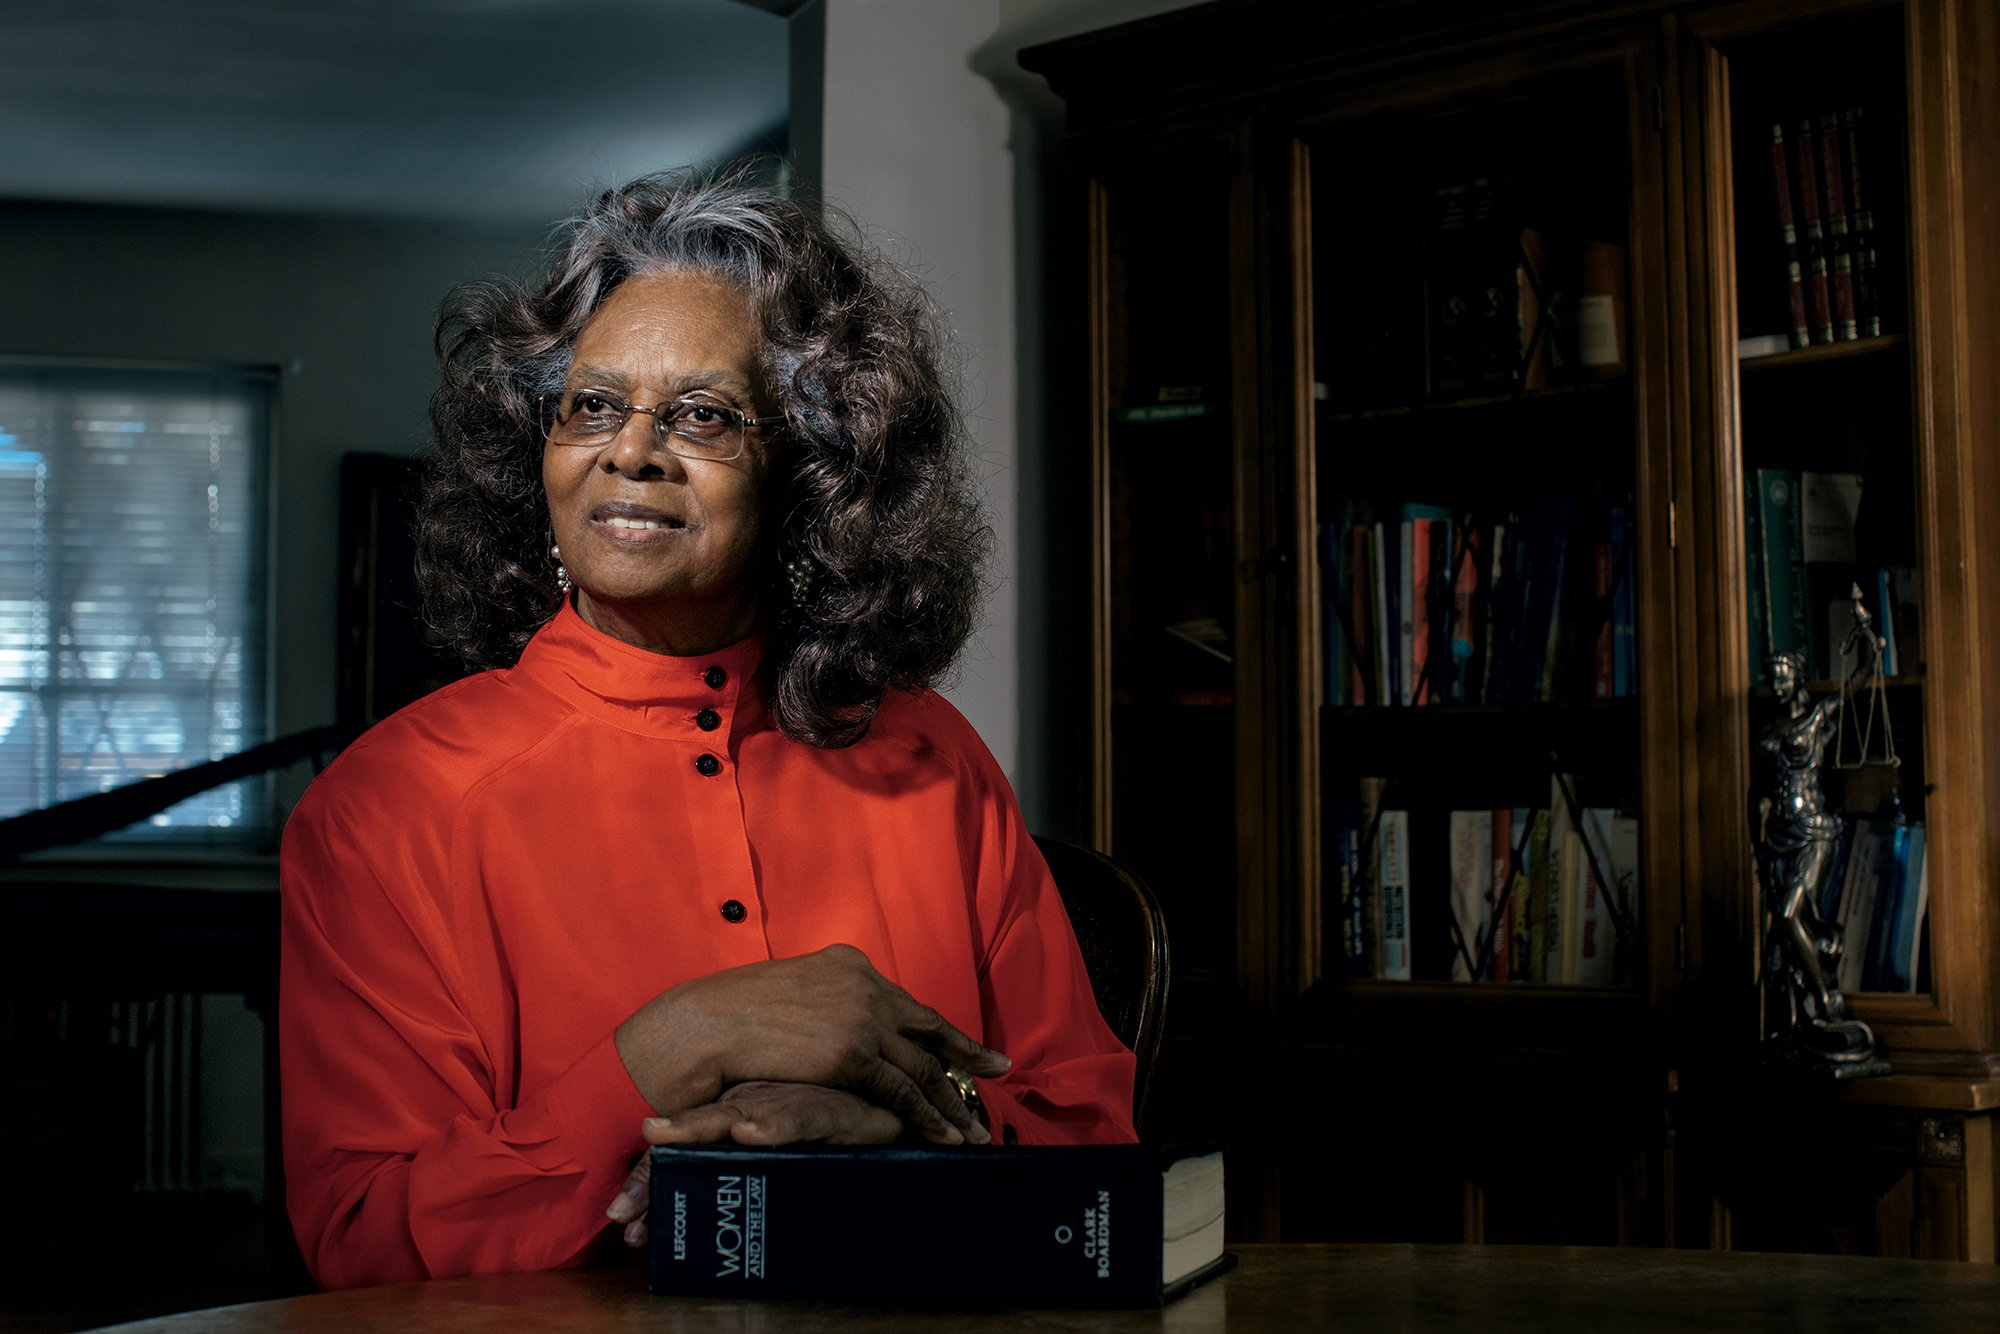 Sandra Bundy fought back against the lewd supervisors at her DC job. Her case helped to establish sexual-harassment protections for women everywhere. Photograph by Lexey Swall.